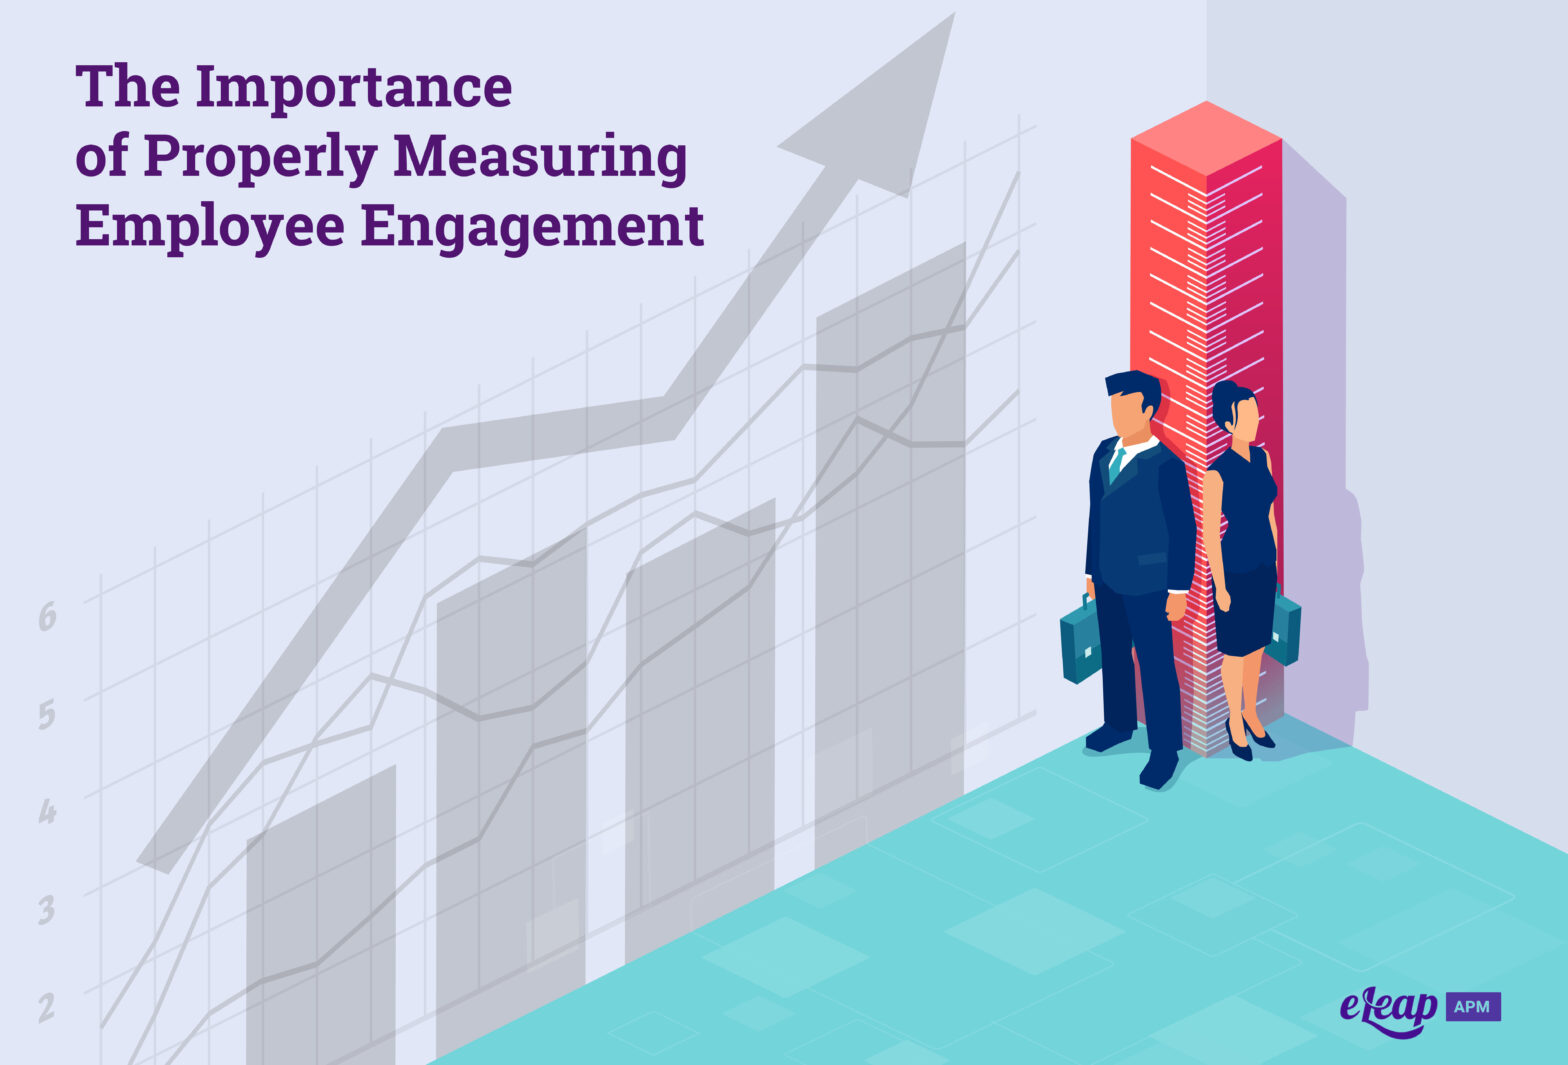 The Importance of Properly Measuring Employee Engagement